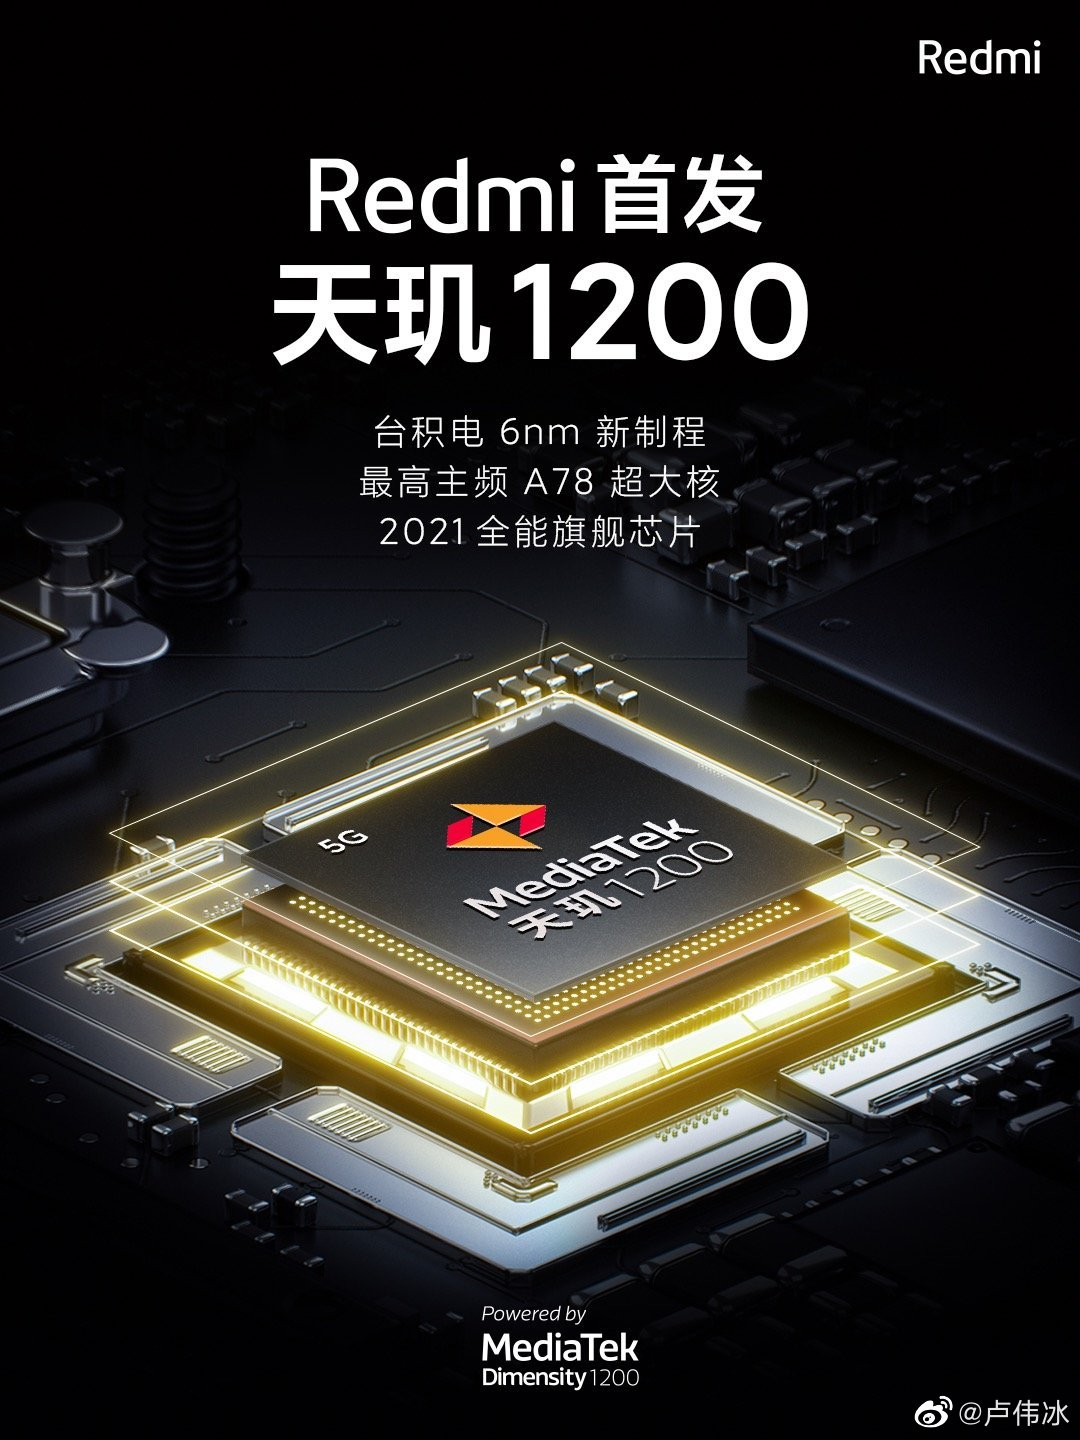 This is the MediaTek Dimensity 1200, a new beast that Xiaomi will debut